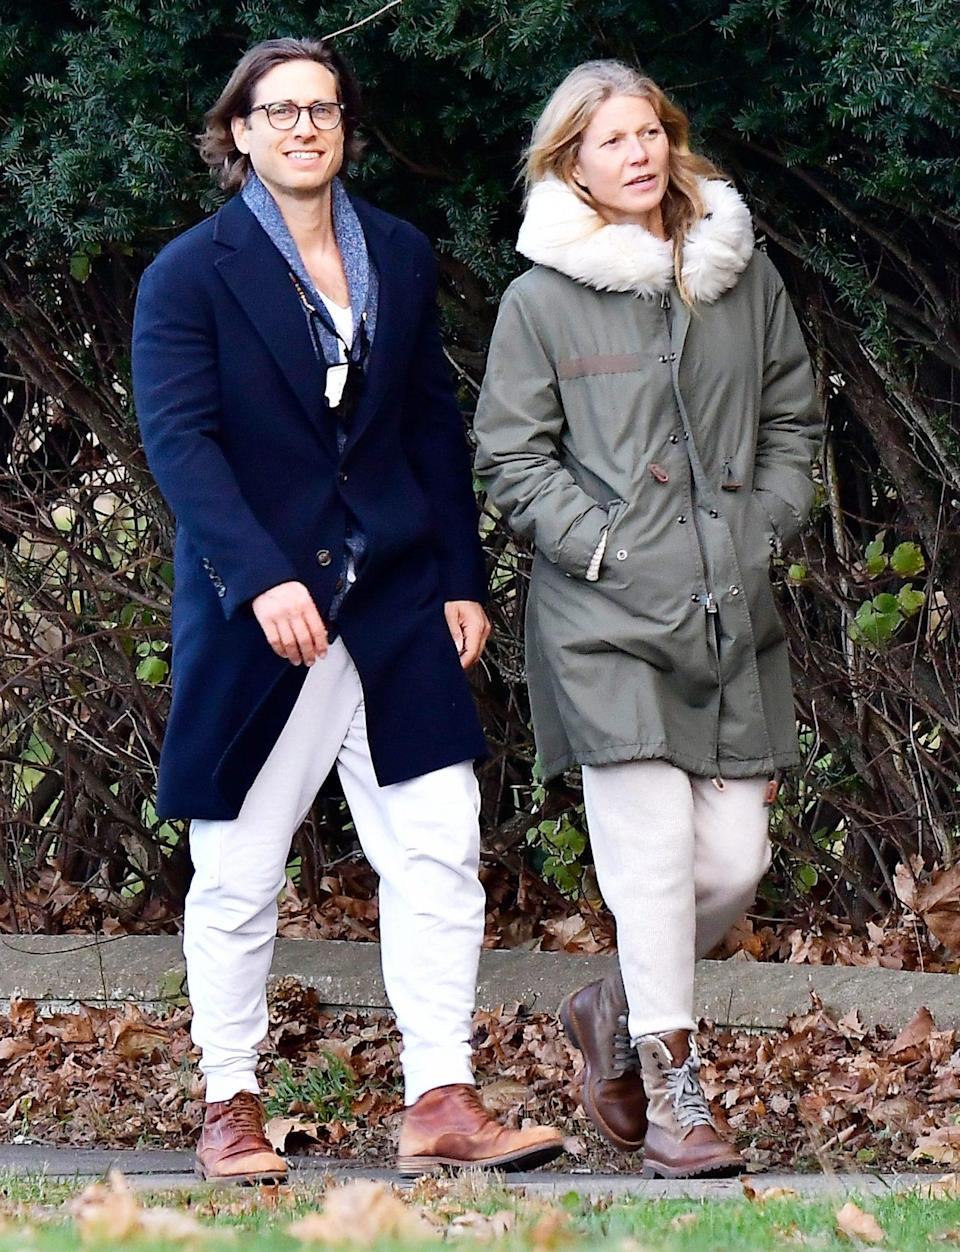 <p>Gwyneth Paltrow and husband Brad Falchuk bundle up to go for a walk on Sunday in the Hamptons.</p>